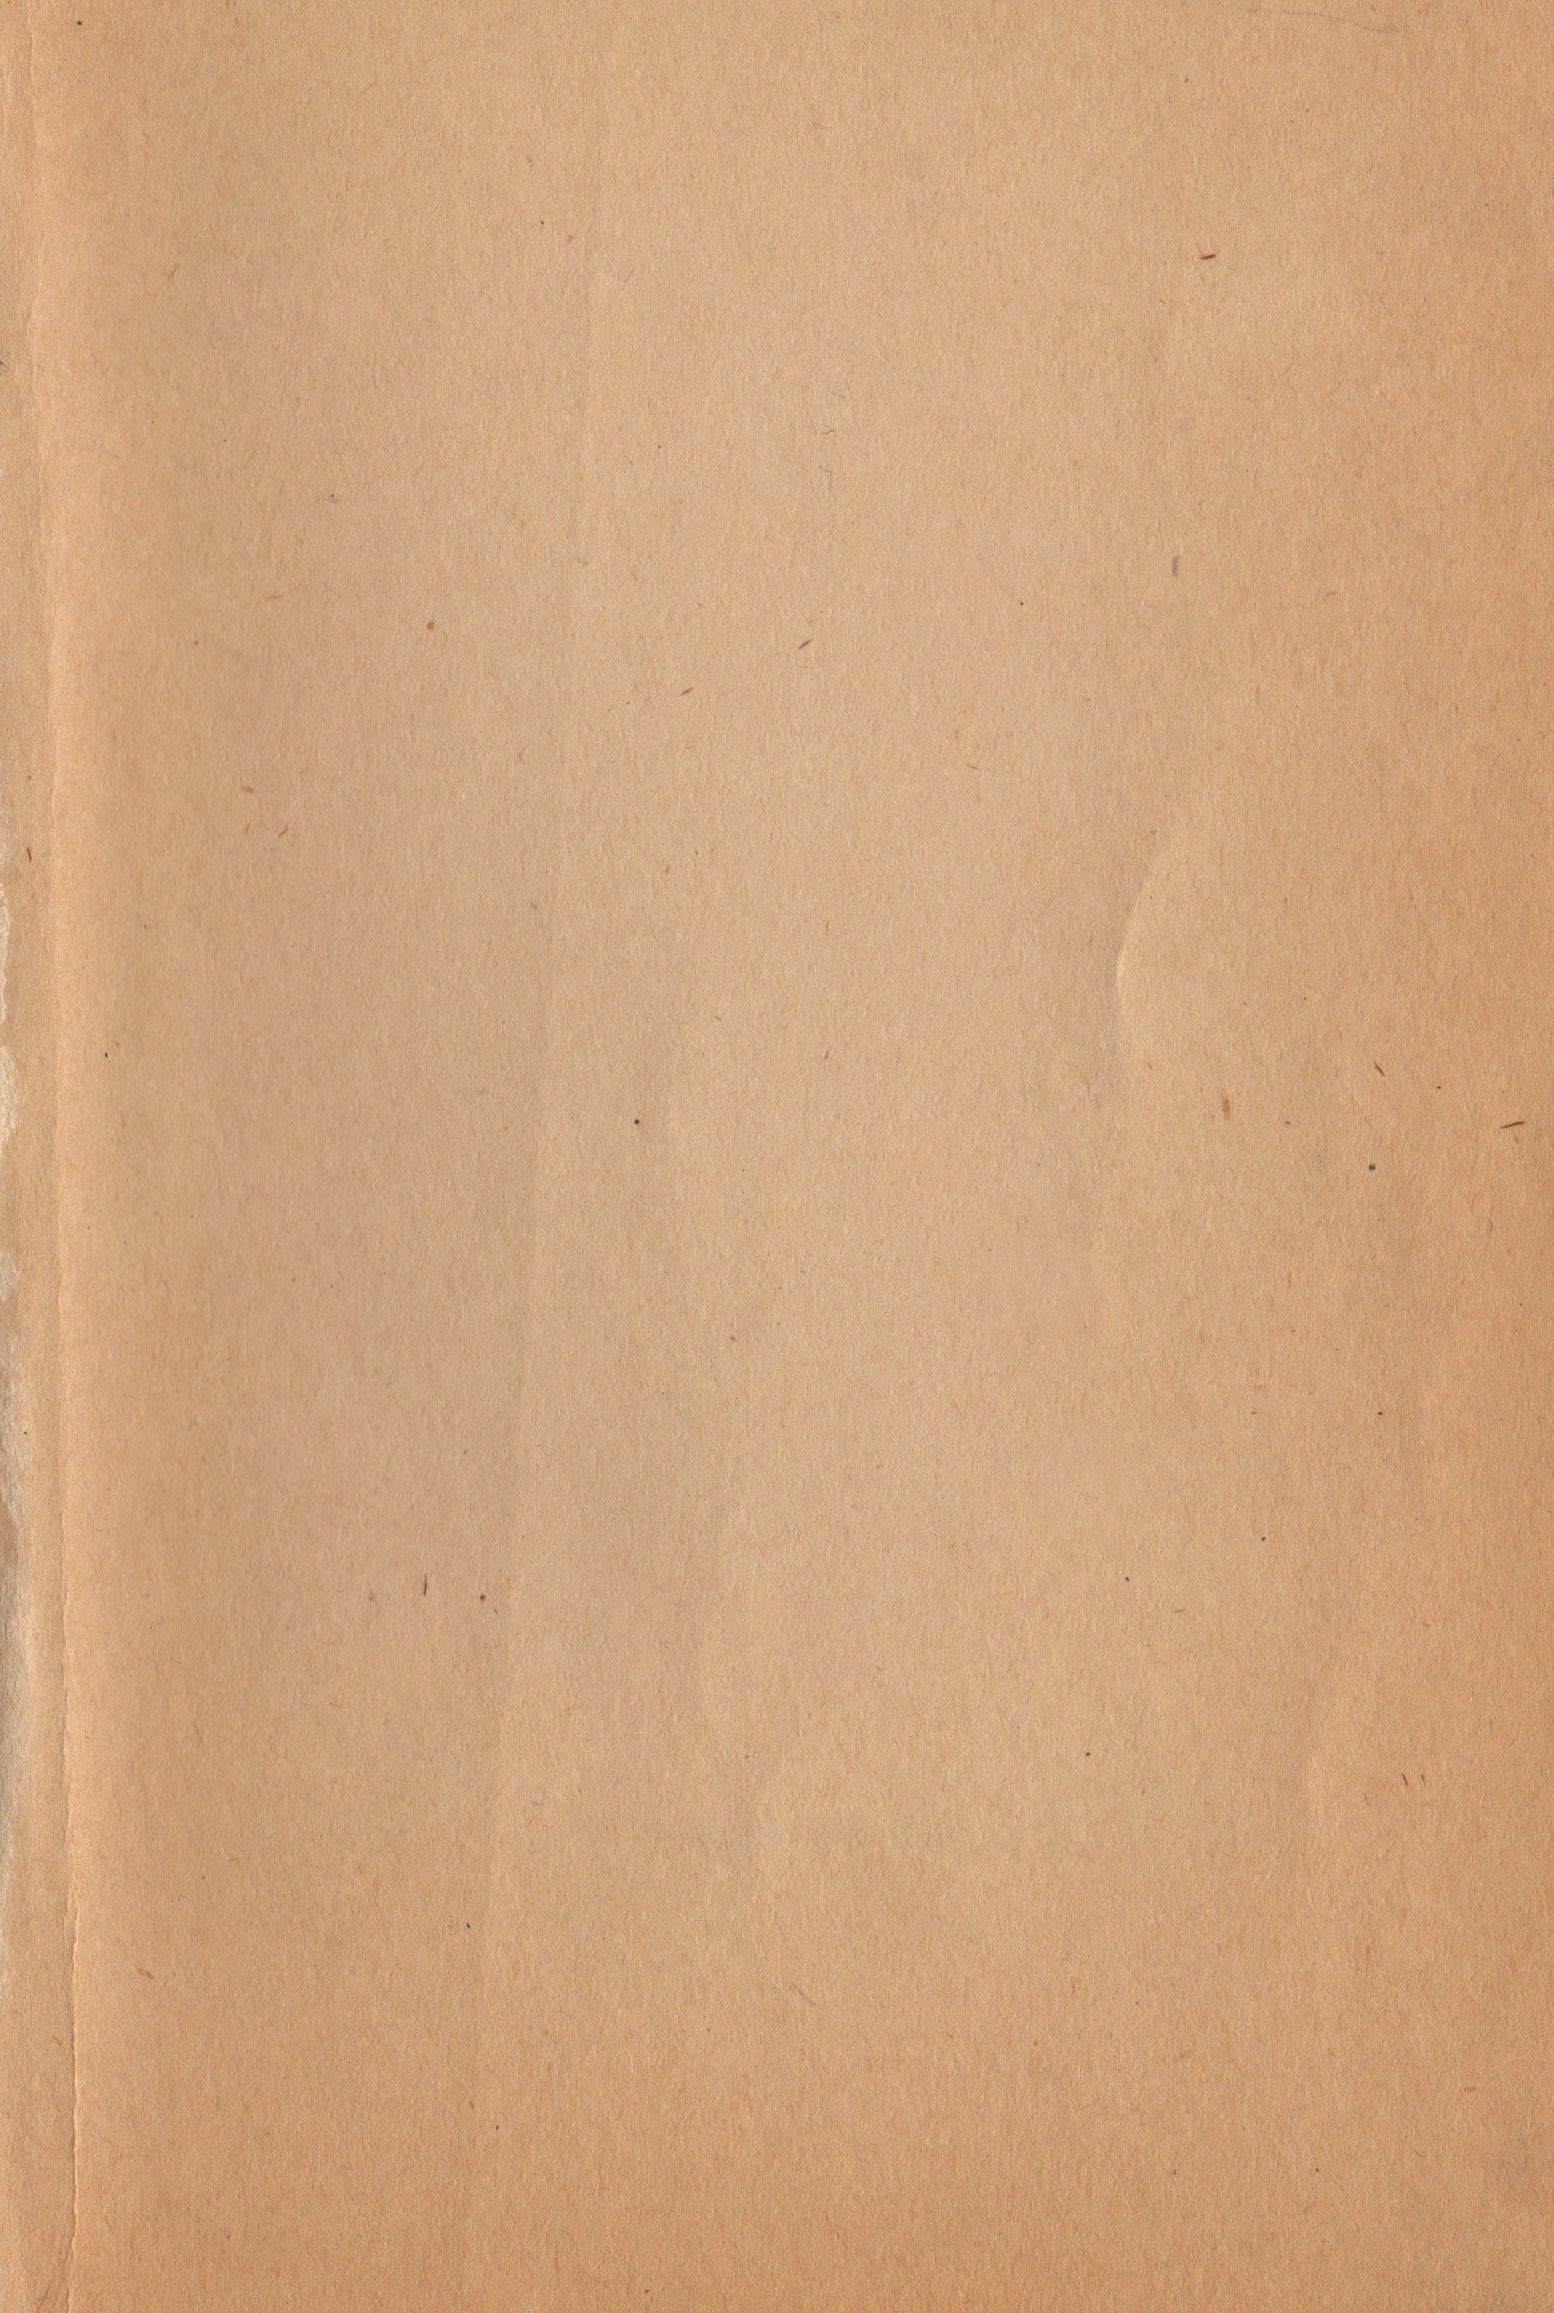 Vintage Paper Sheet, Brown, Crumpled, Old, Paper, HQ Photo